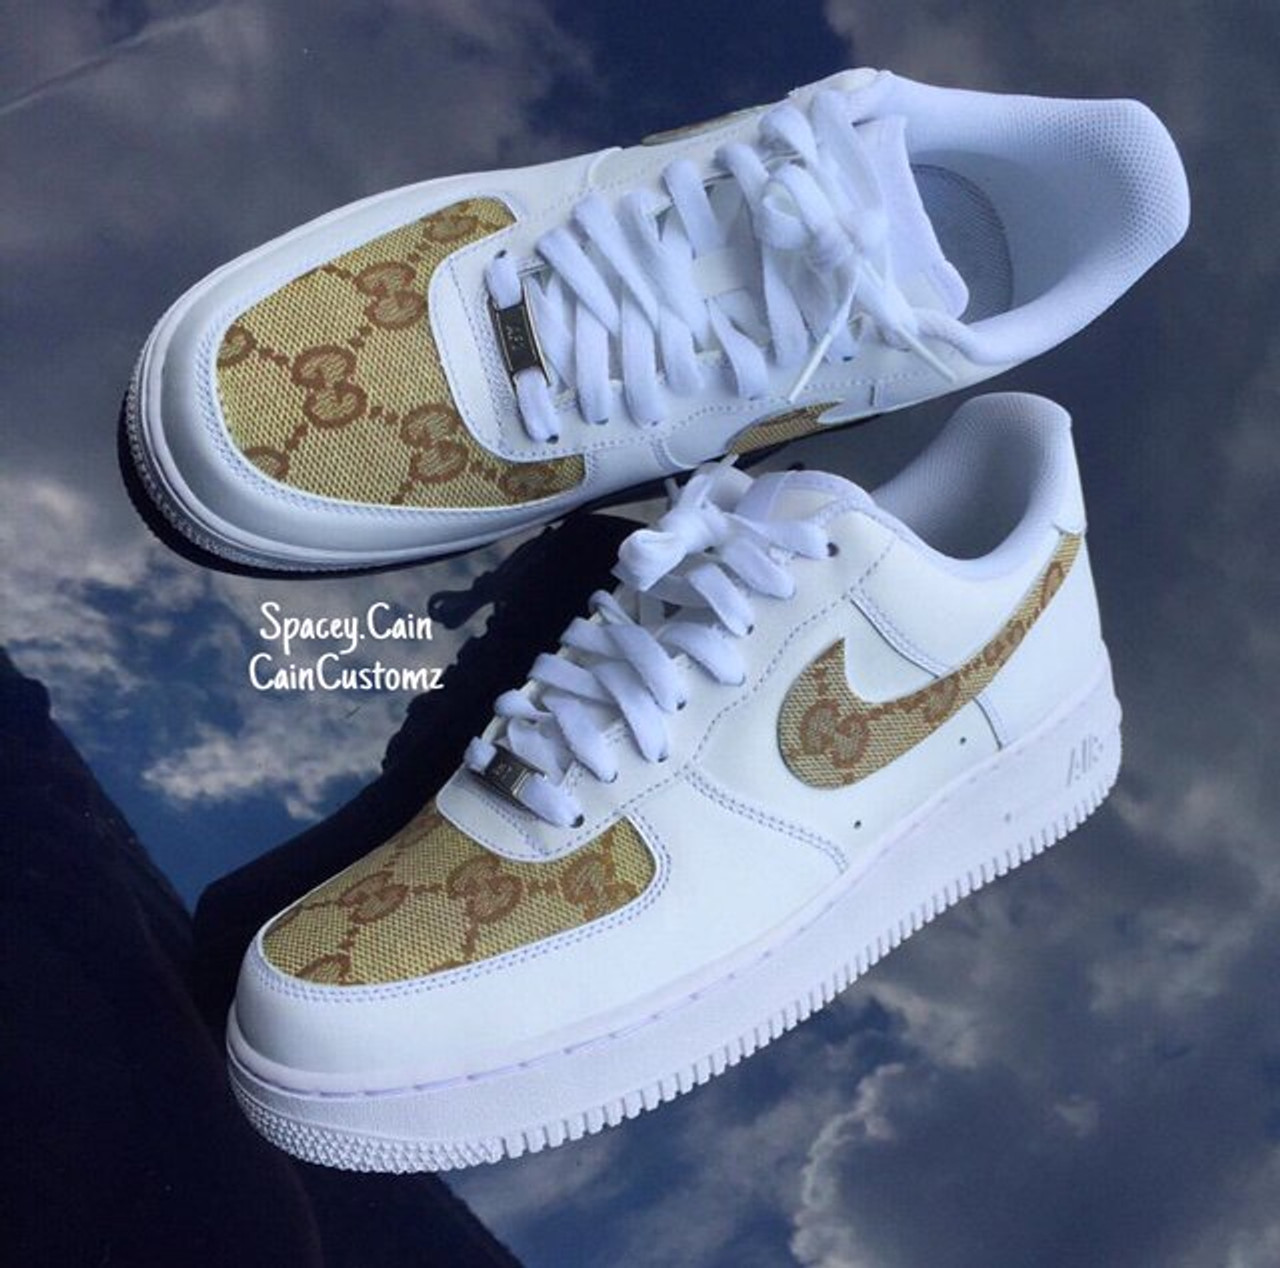 42f3d56aa7746 Gucci Air Force One Lows -Men   GS - Cain CustomZ